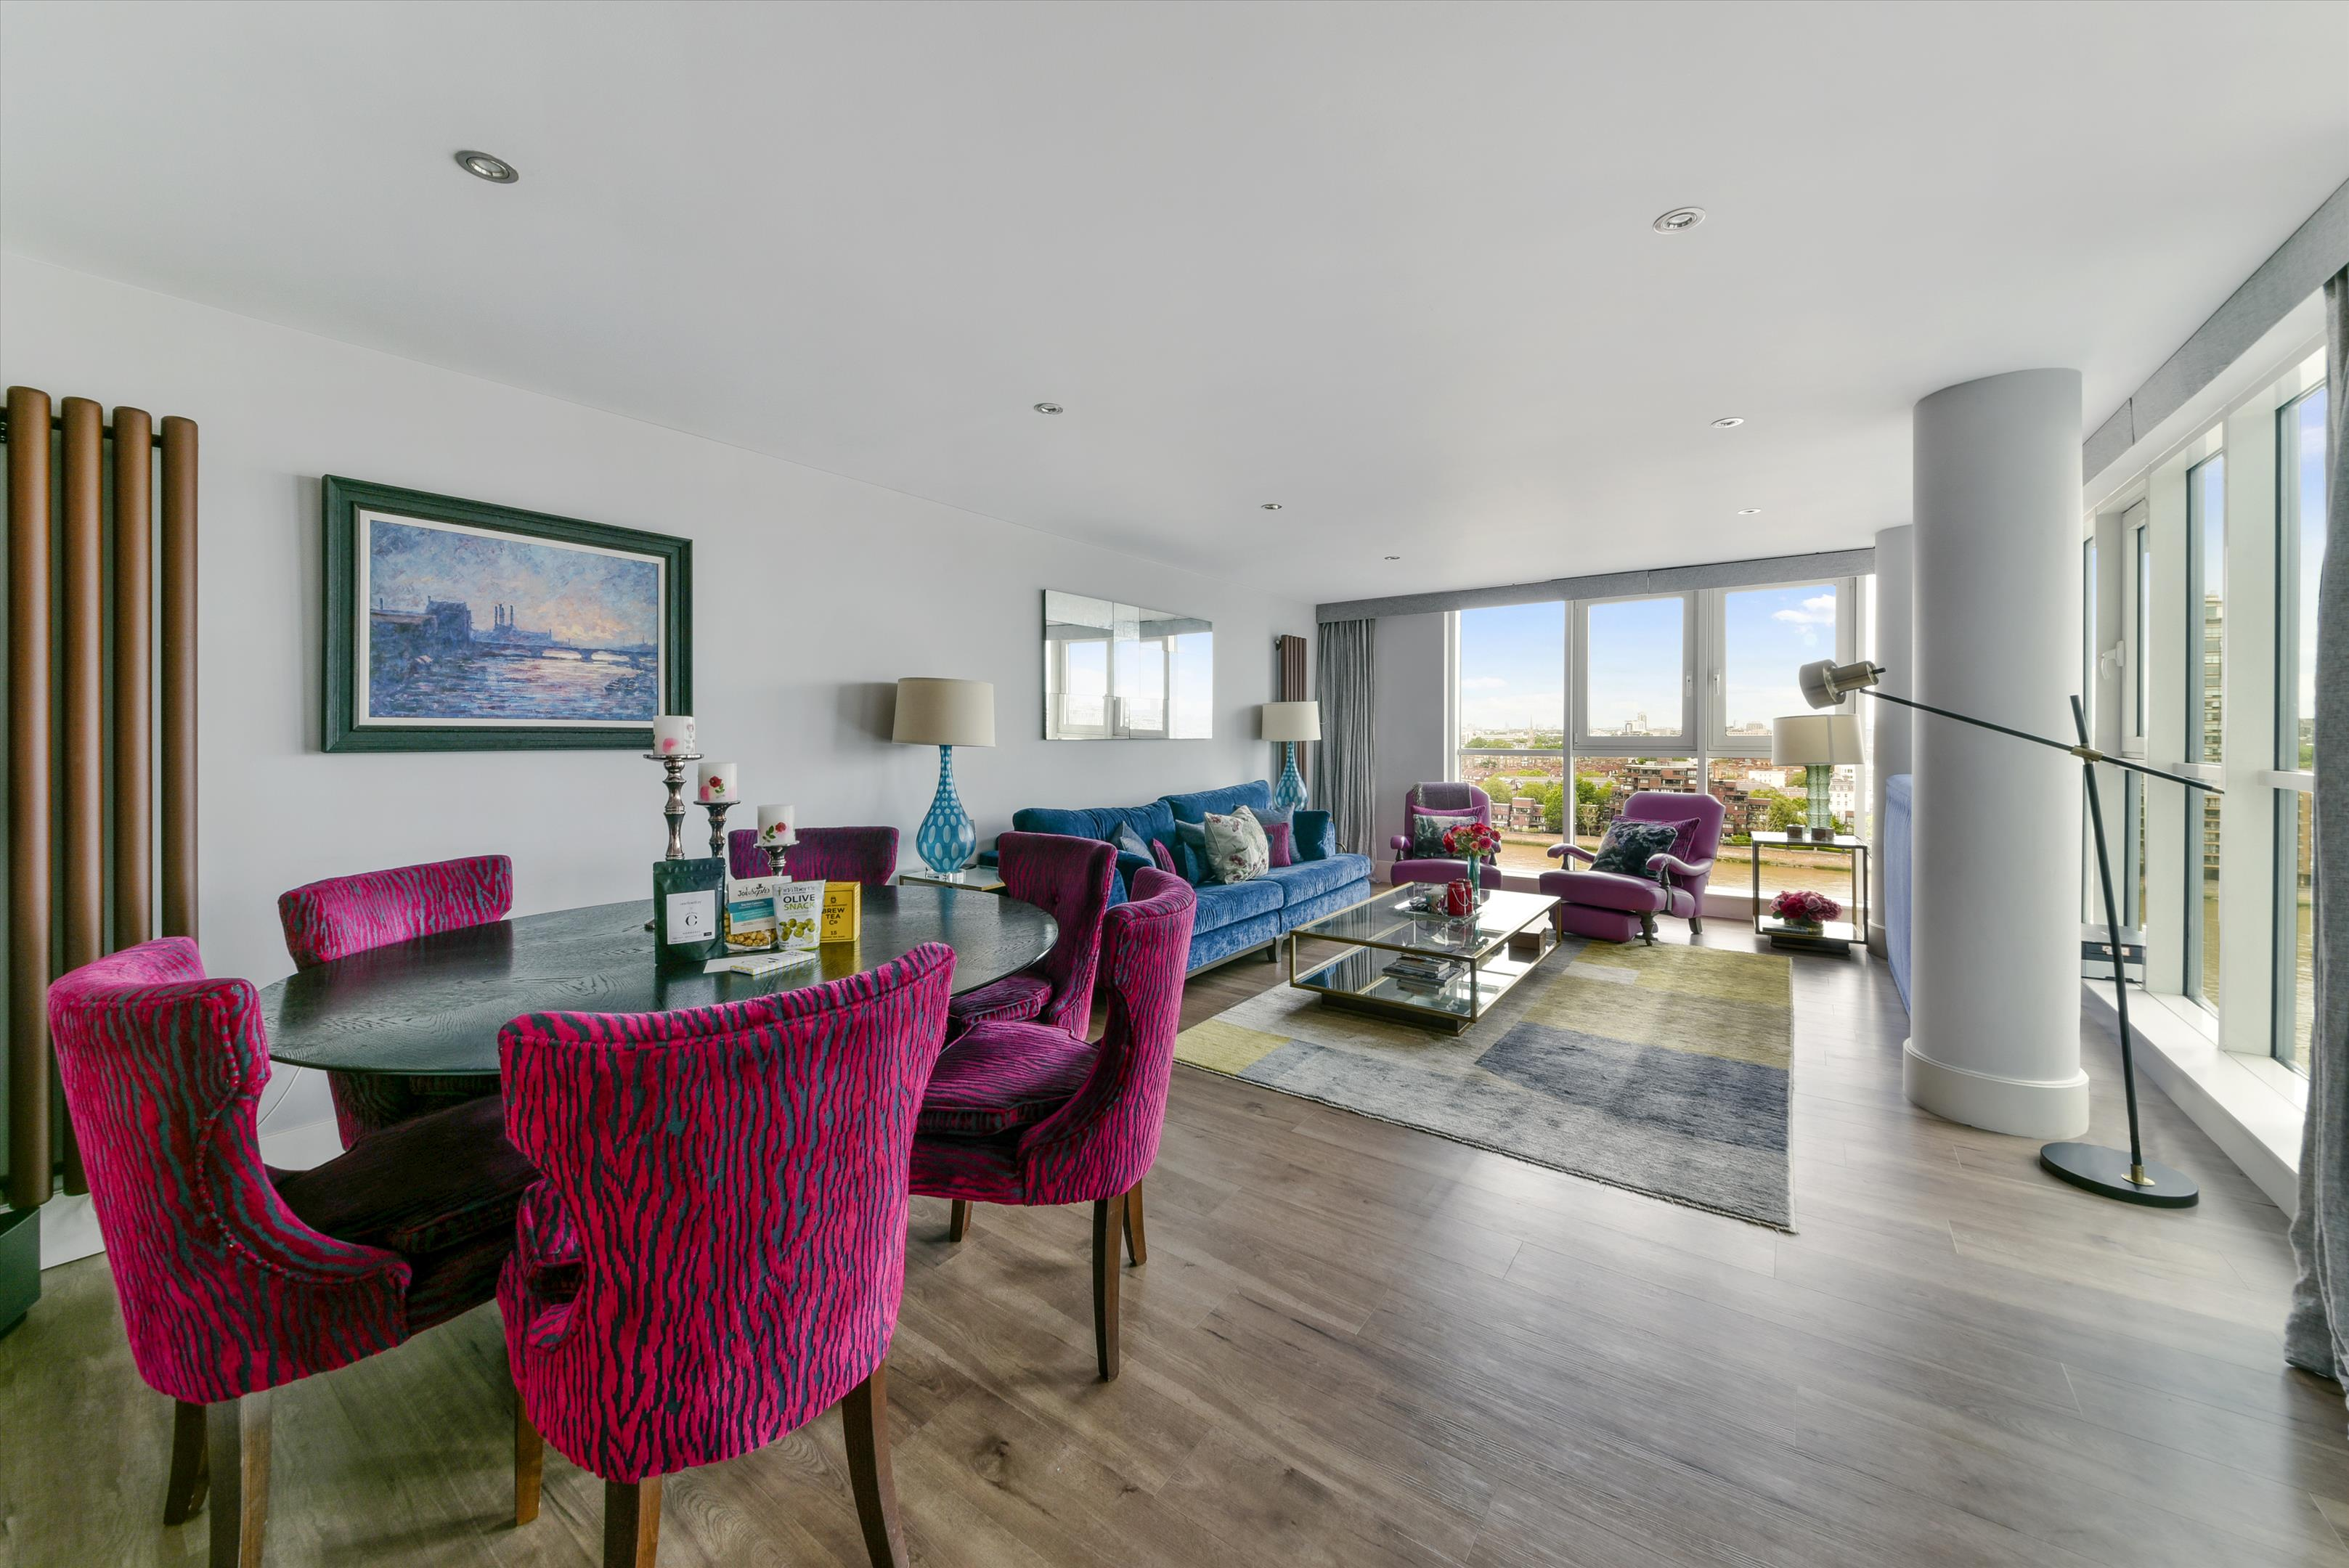 3 Room Flat flat to rent in st. george wharf, london, sw8 - baq012017525